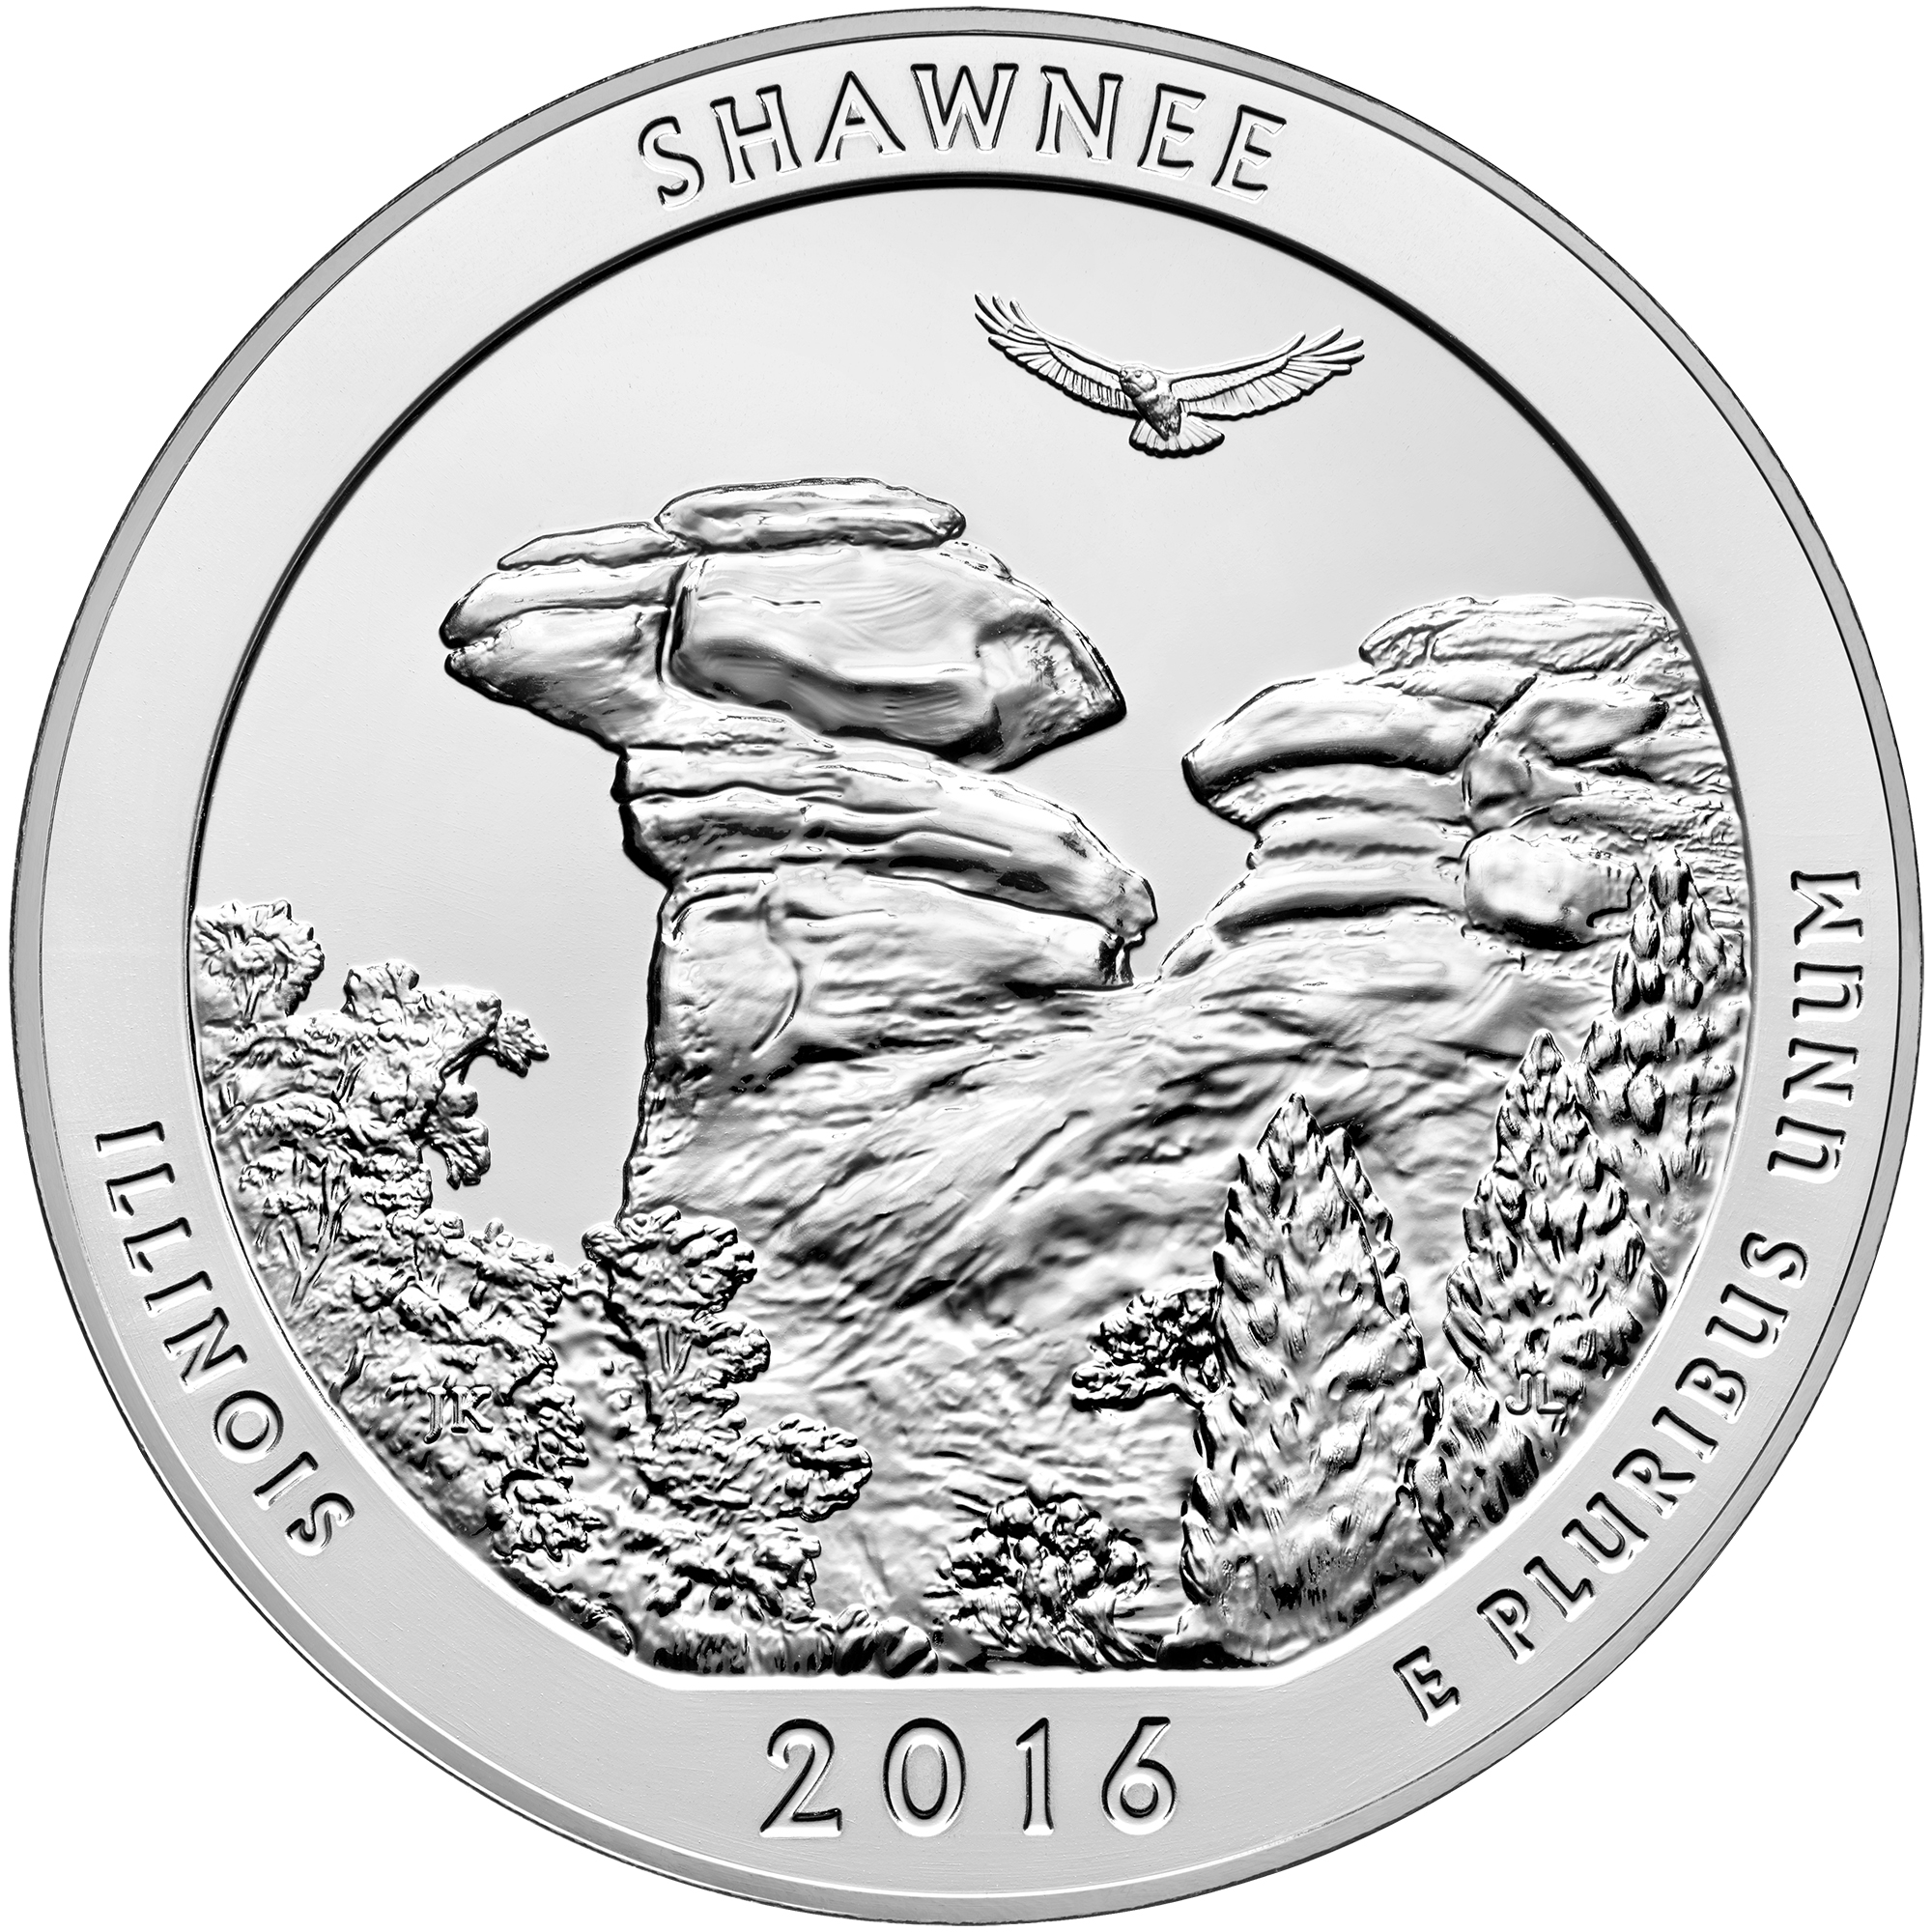 2016-atb-quarters-five-ounce-silver-bullion-shawnee-illinois-reverse